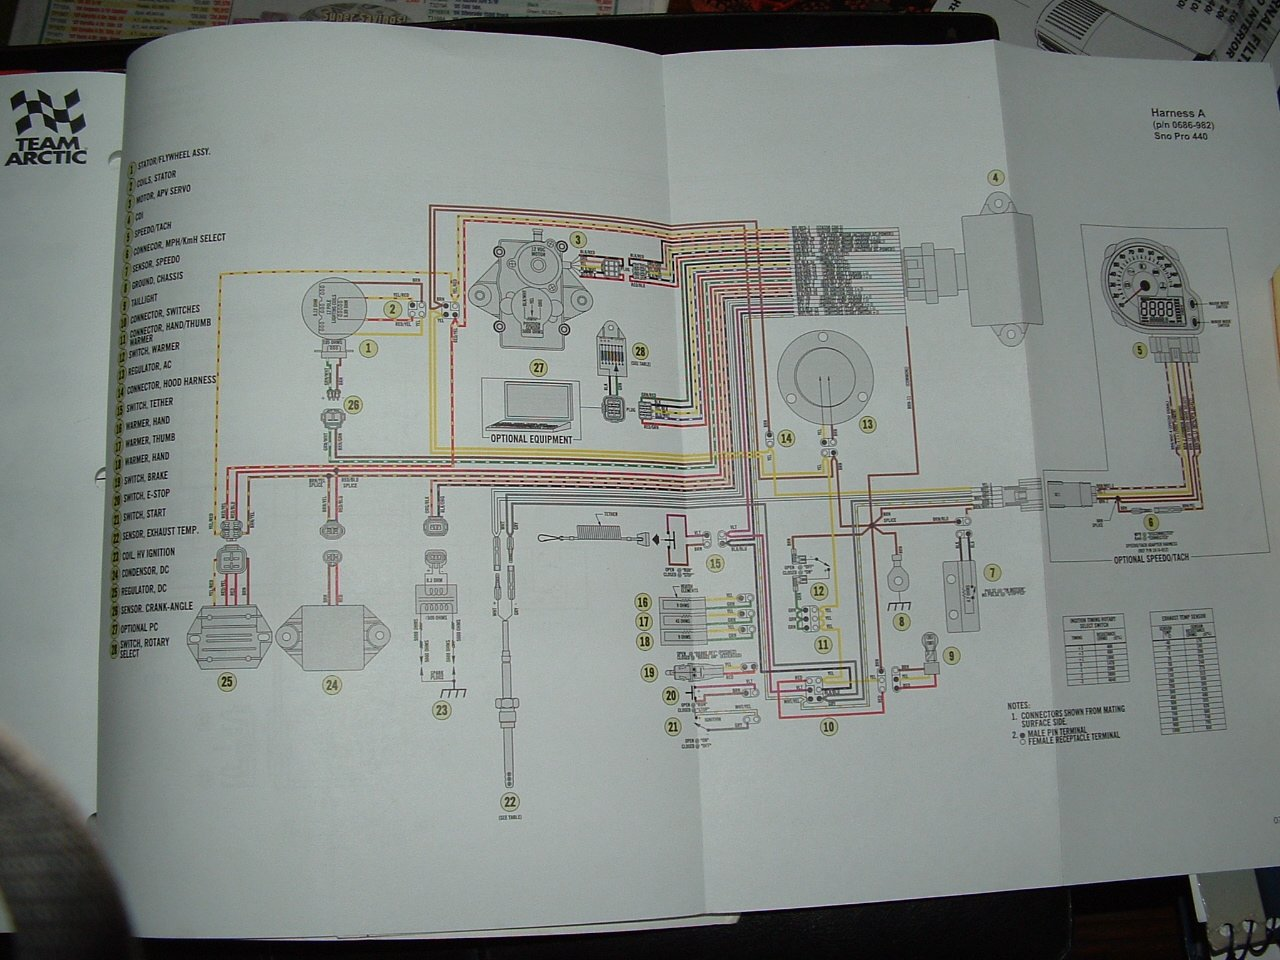 hight resolution of 03 f7 efi electrical problem urgent arcticchat com arctic cat forum rh arcticchat com 2004 arctic cat f7 wiring diagram 2003 arctic cat f7 wiring diagram